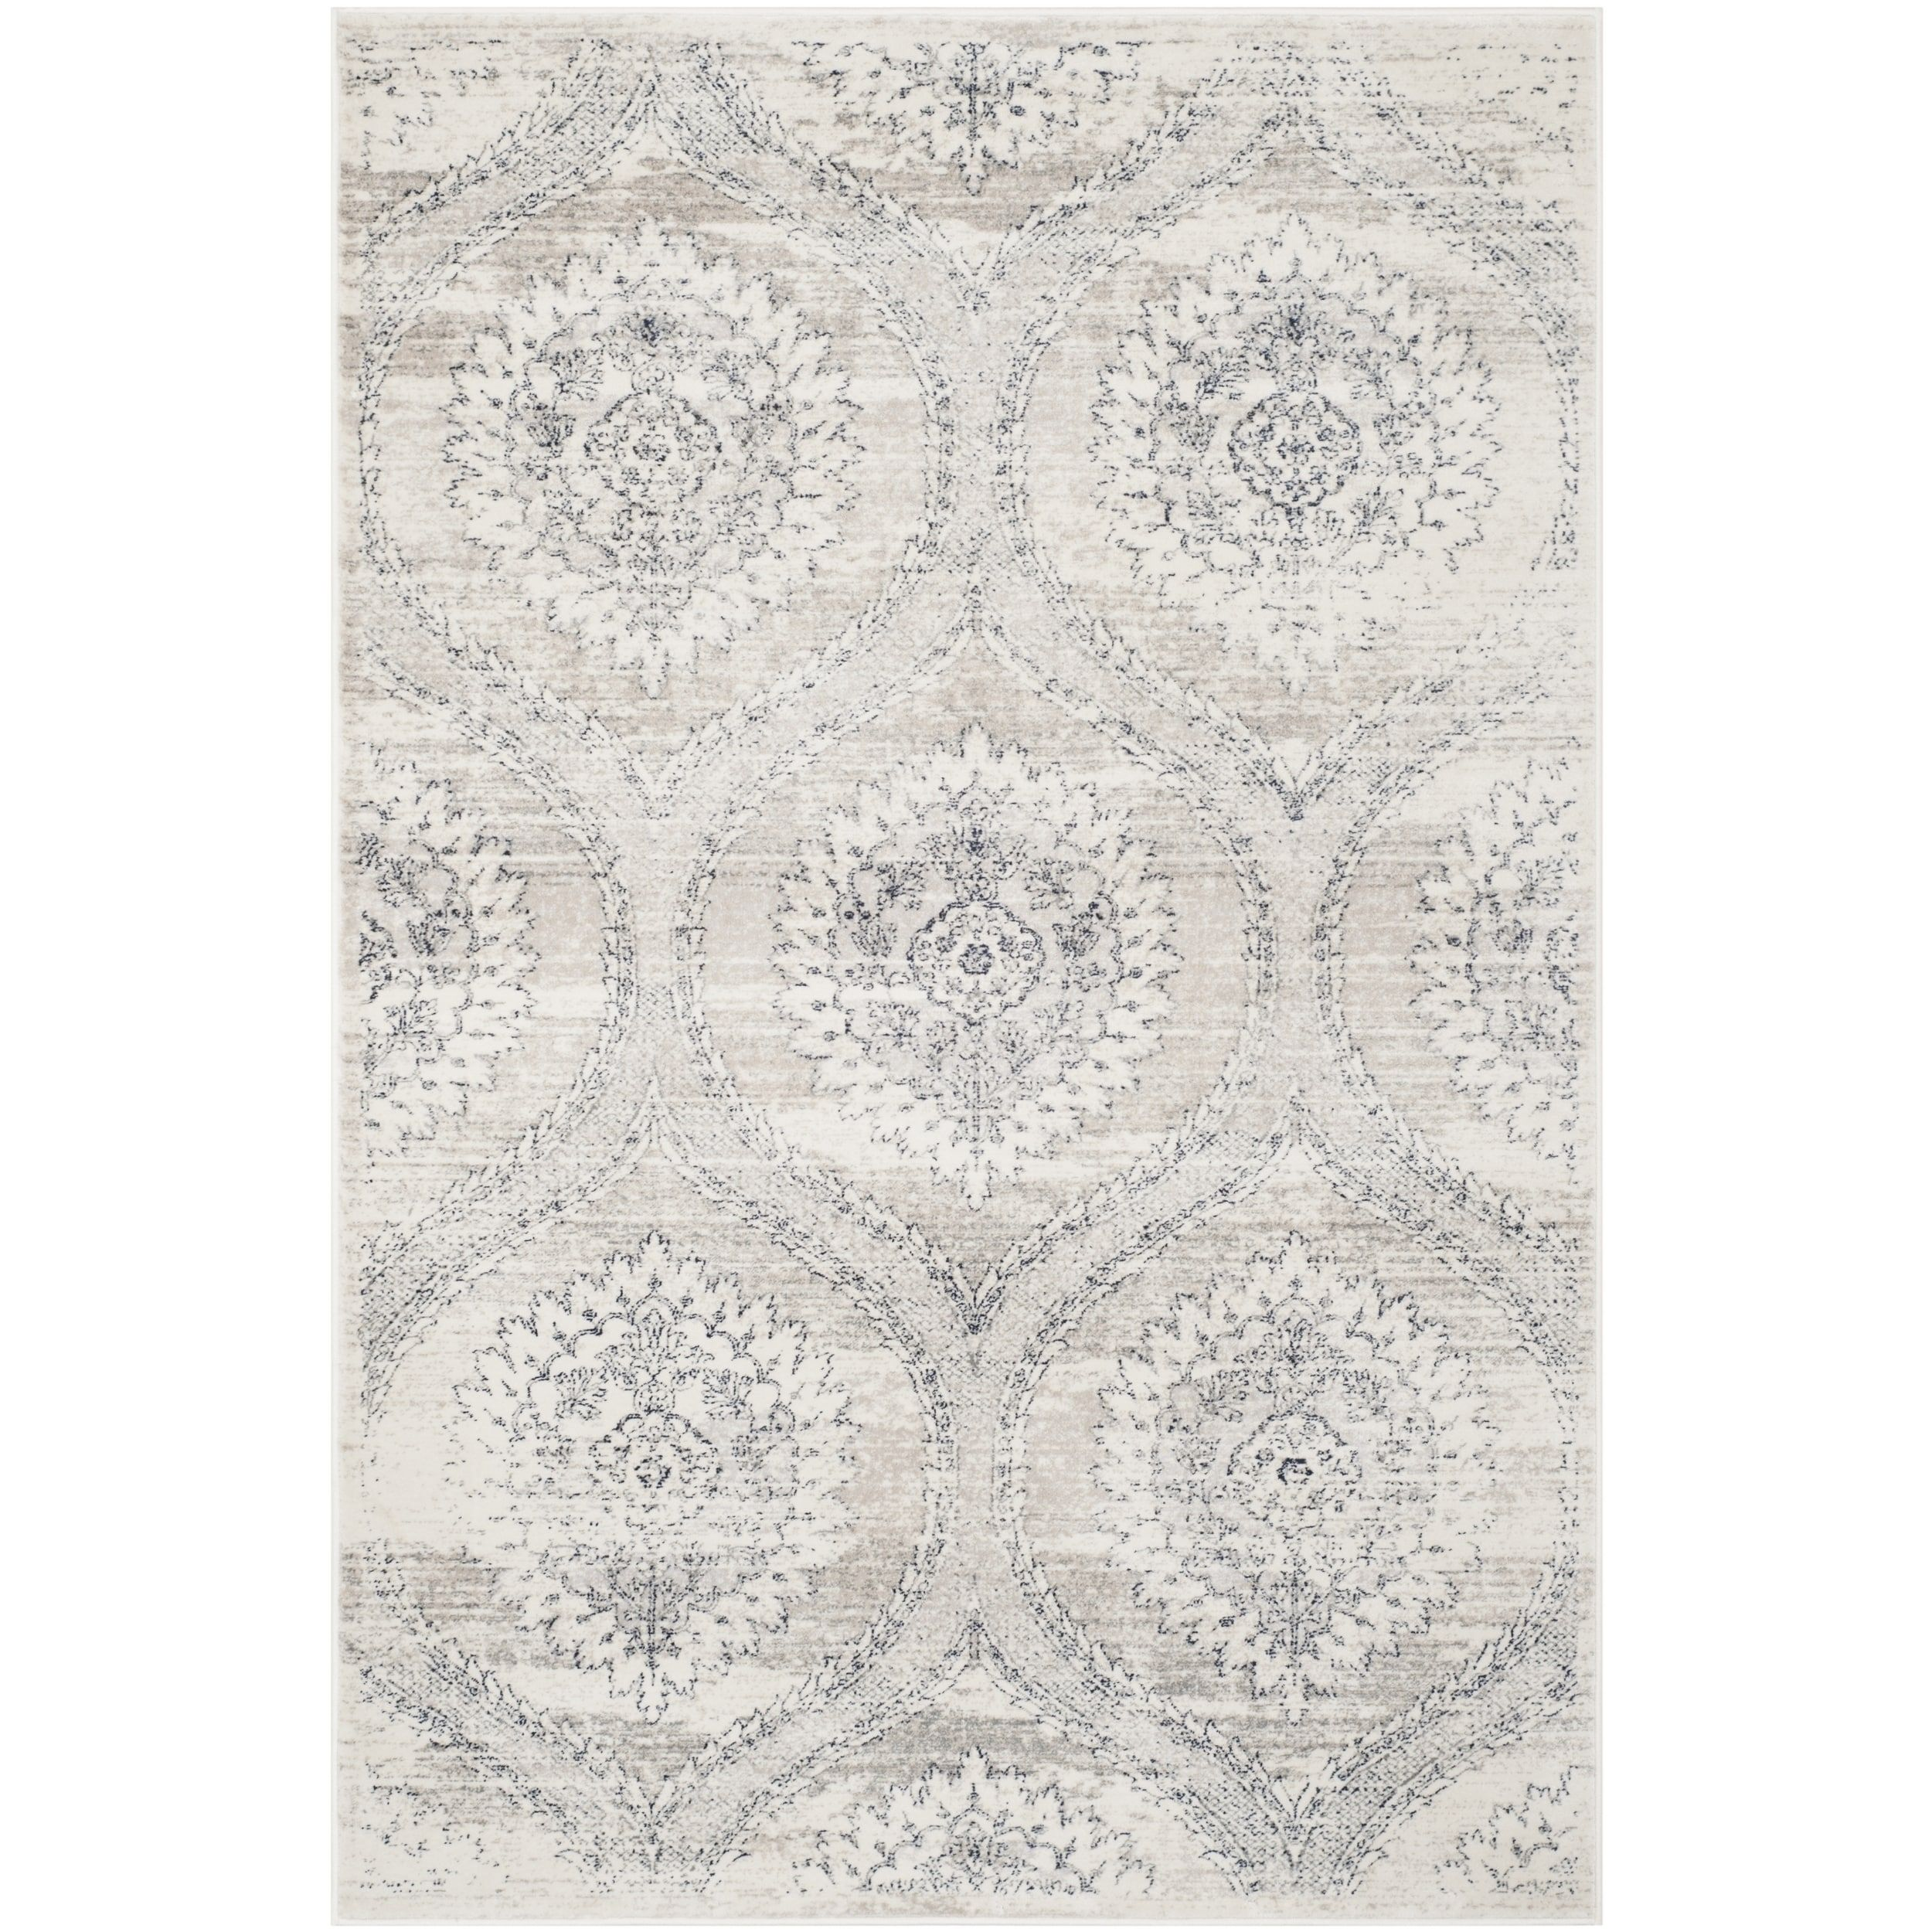 Overstock Com Online Shopping Bedding Furniture Electronics Jewelry Clothing More Floral Area Rugs Black Area Rugs Geometric Area Rug